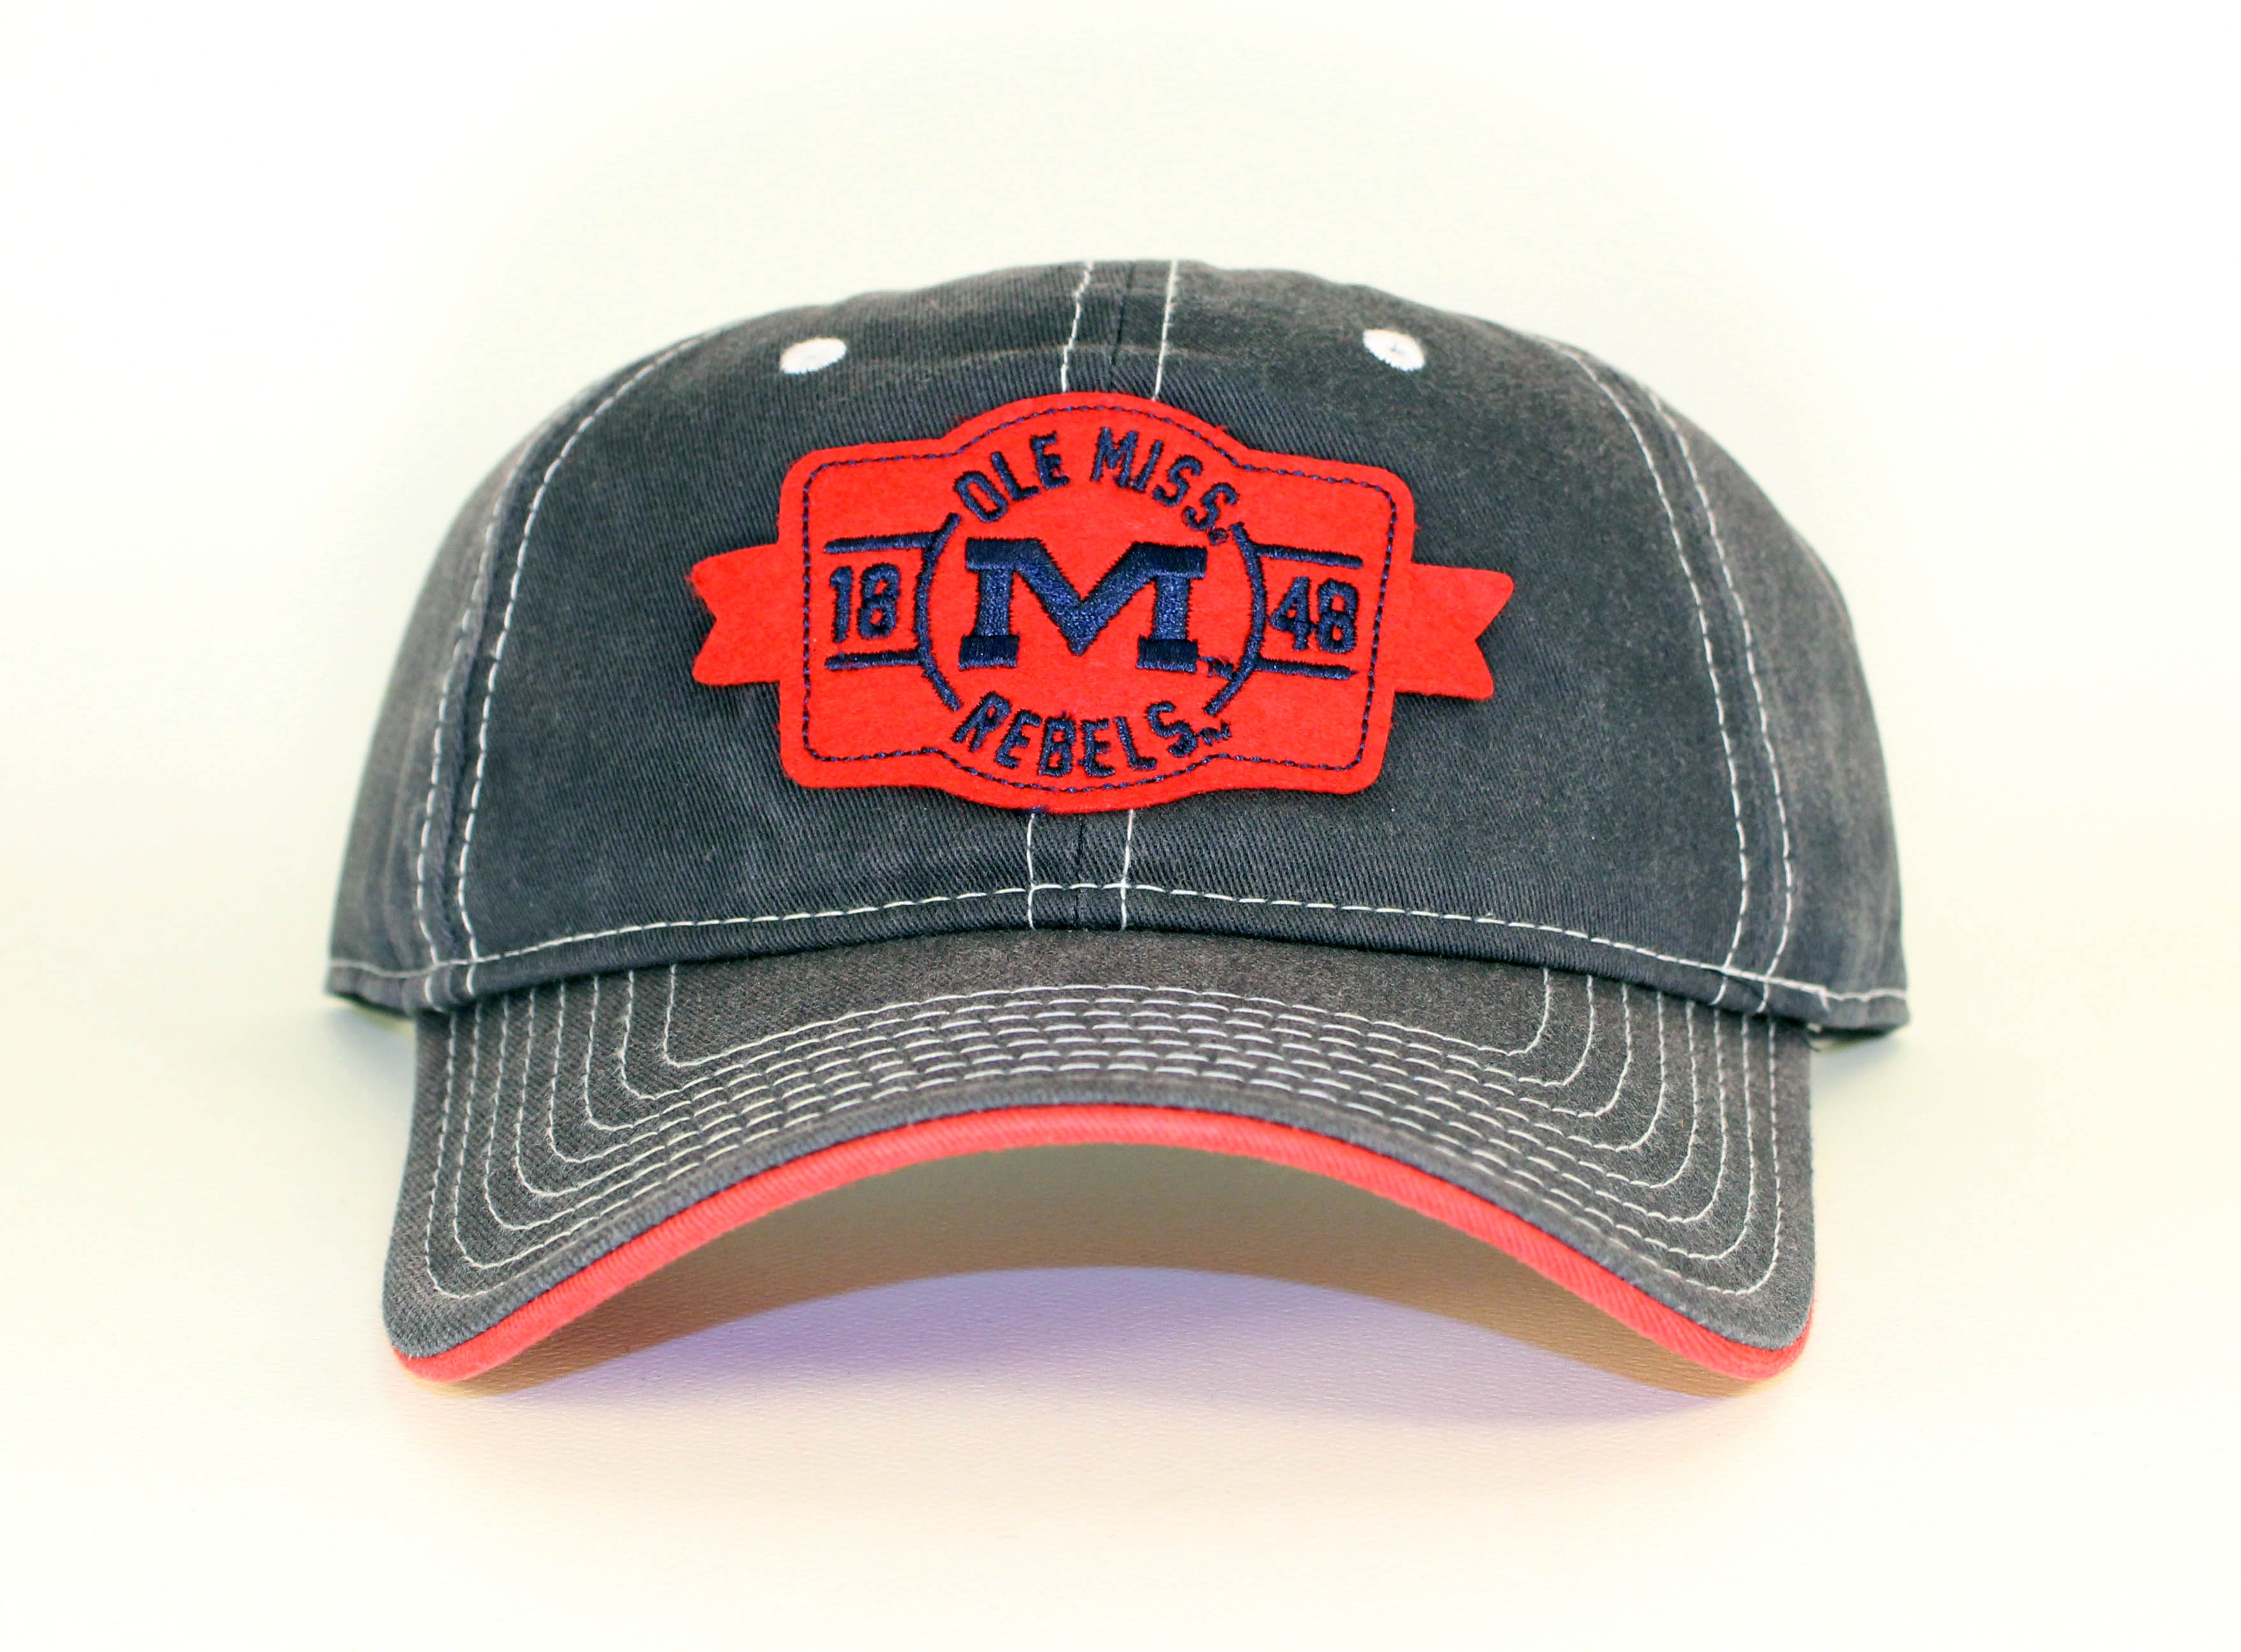 Ole Miss Rebels Red Patch - Navy Hat with White Stitching